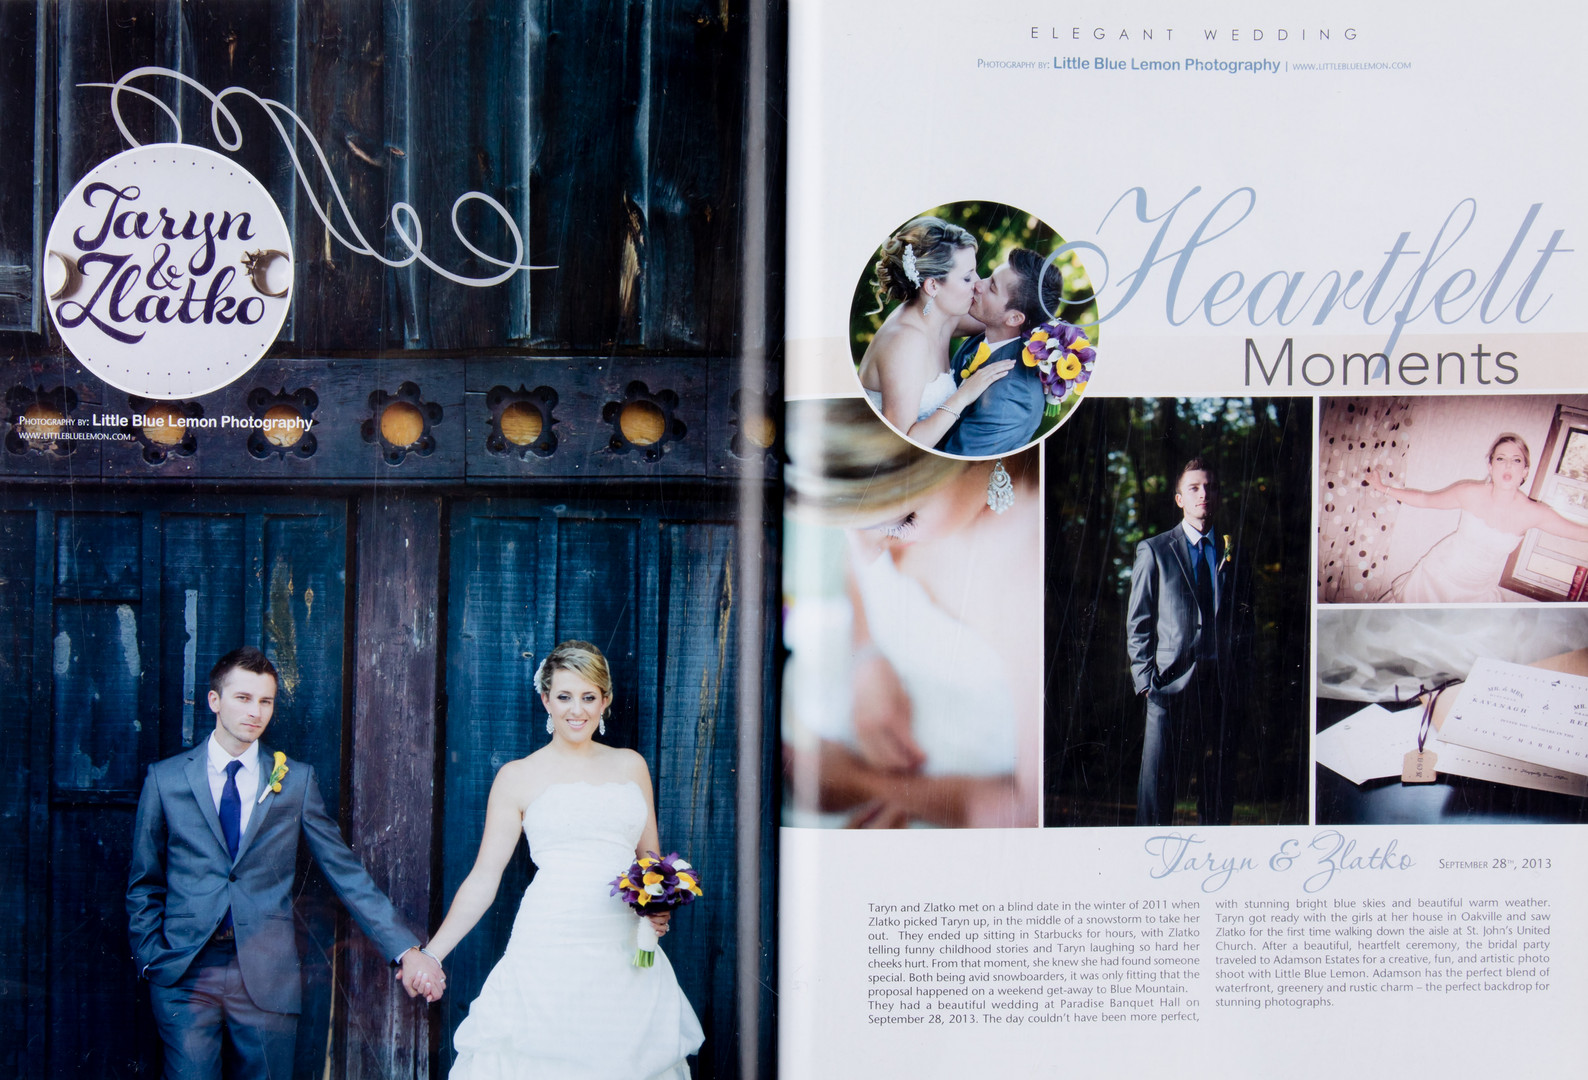 Toronto wedding photographer Little Blue Lemon published luxury wedding, Adamson Estate